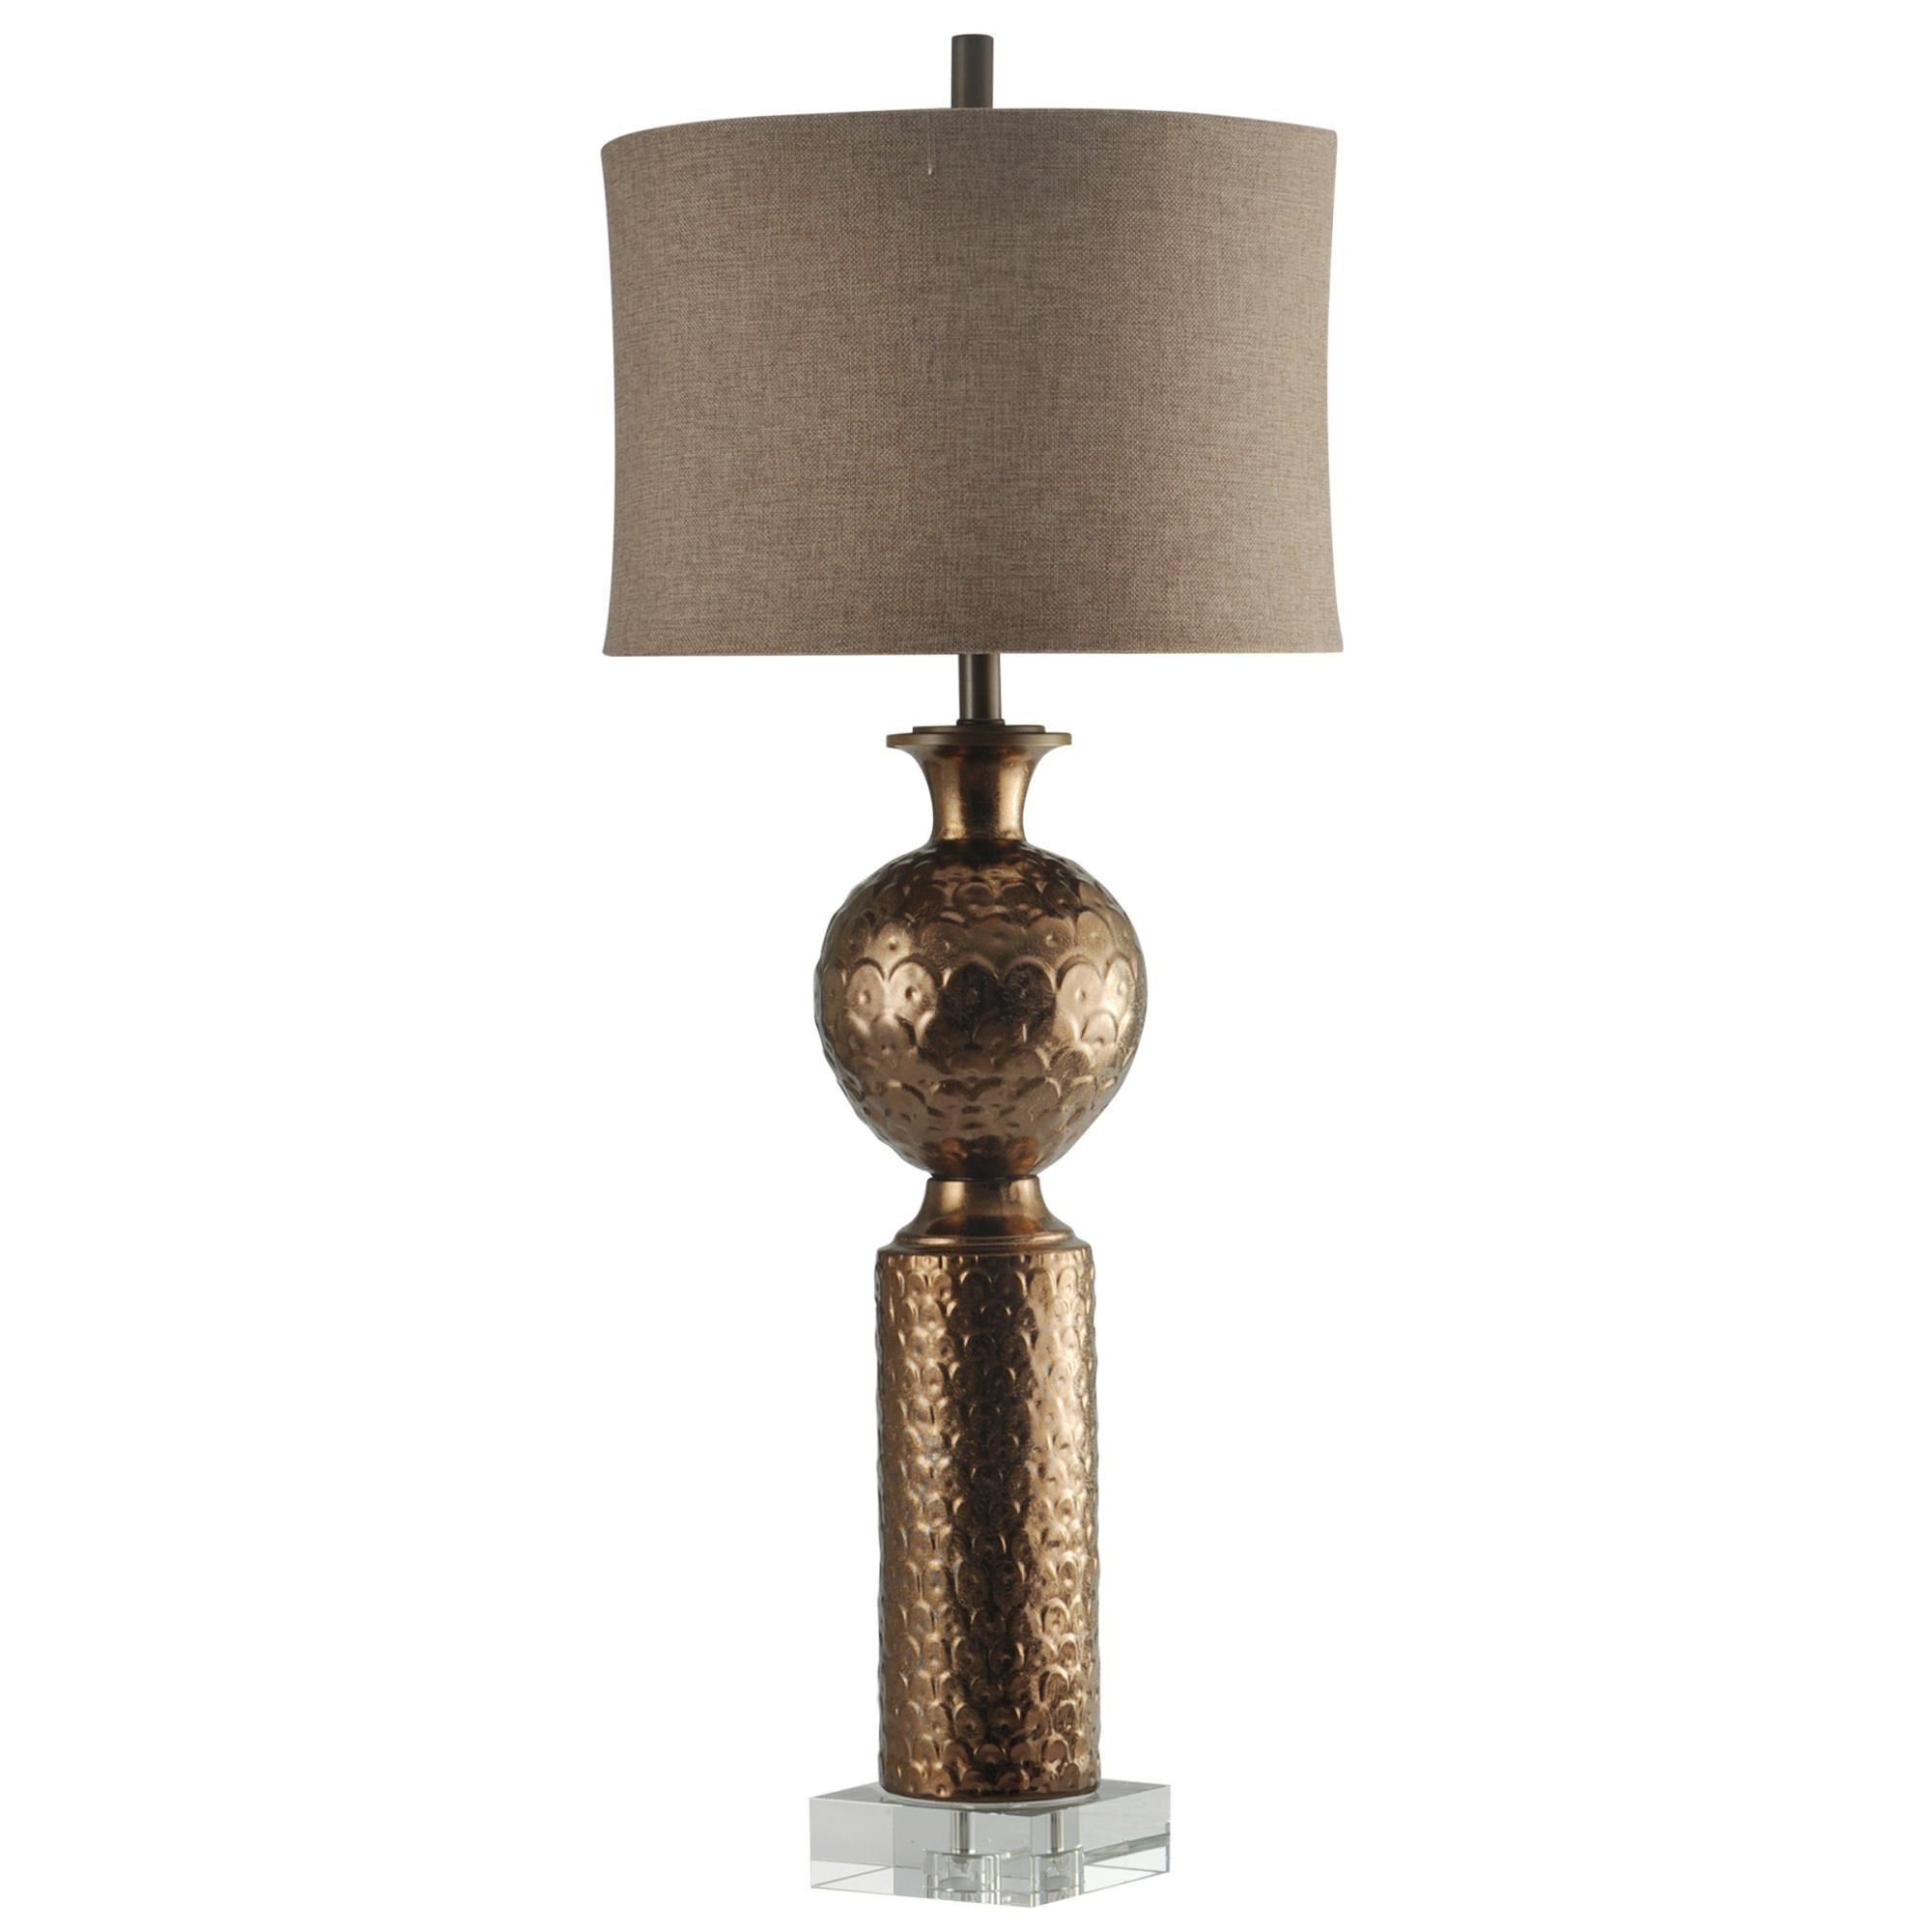 Harp and Finial Catalina 42 Inch Table Lamp Catalina - HFL313657DS - Traditional